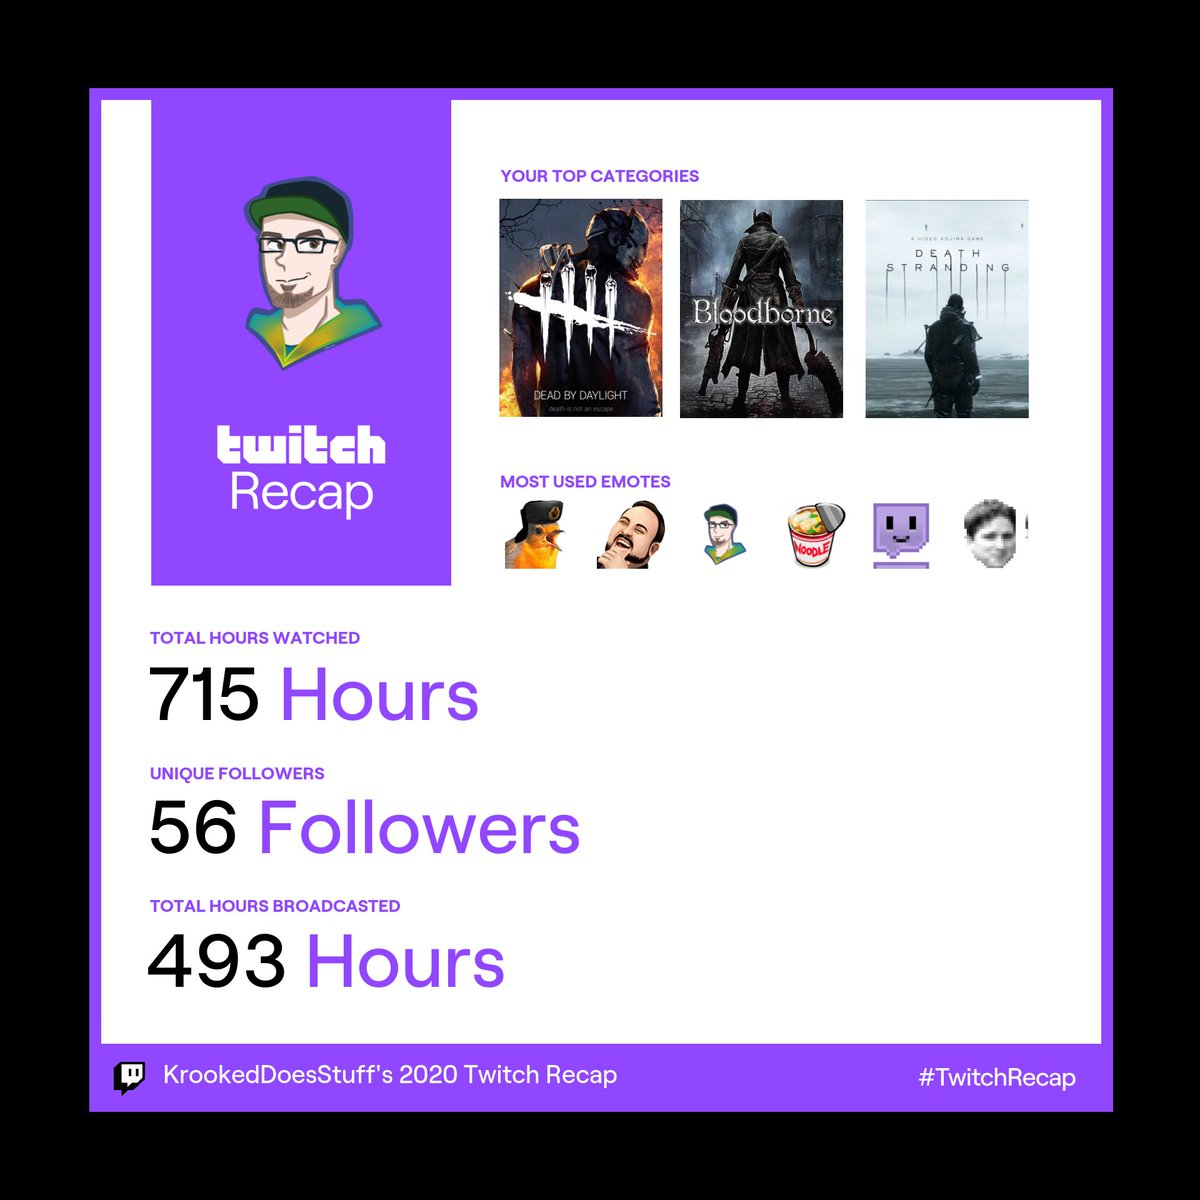 So how's your #twitchrecap looking? I feel like I didn't go anywhere with my channel :/